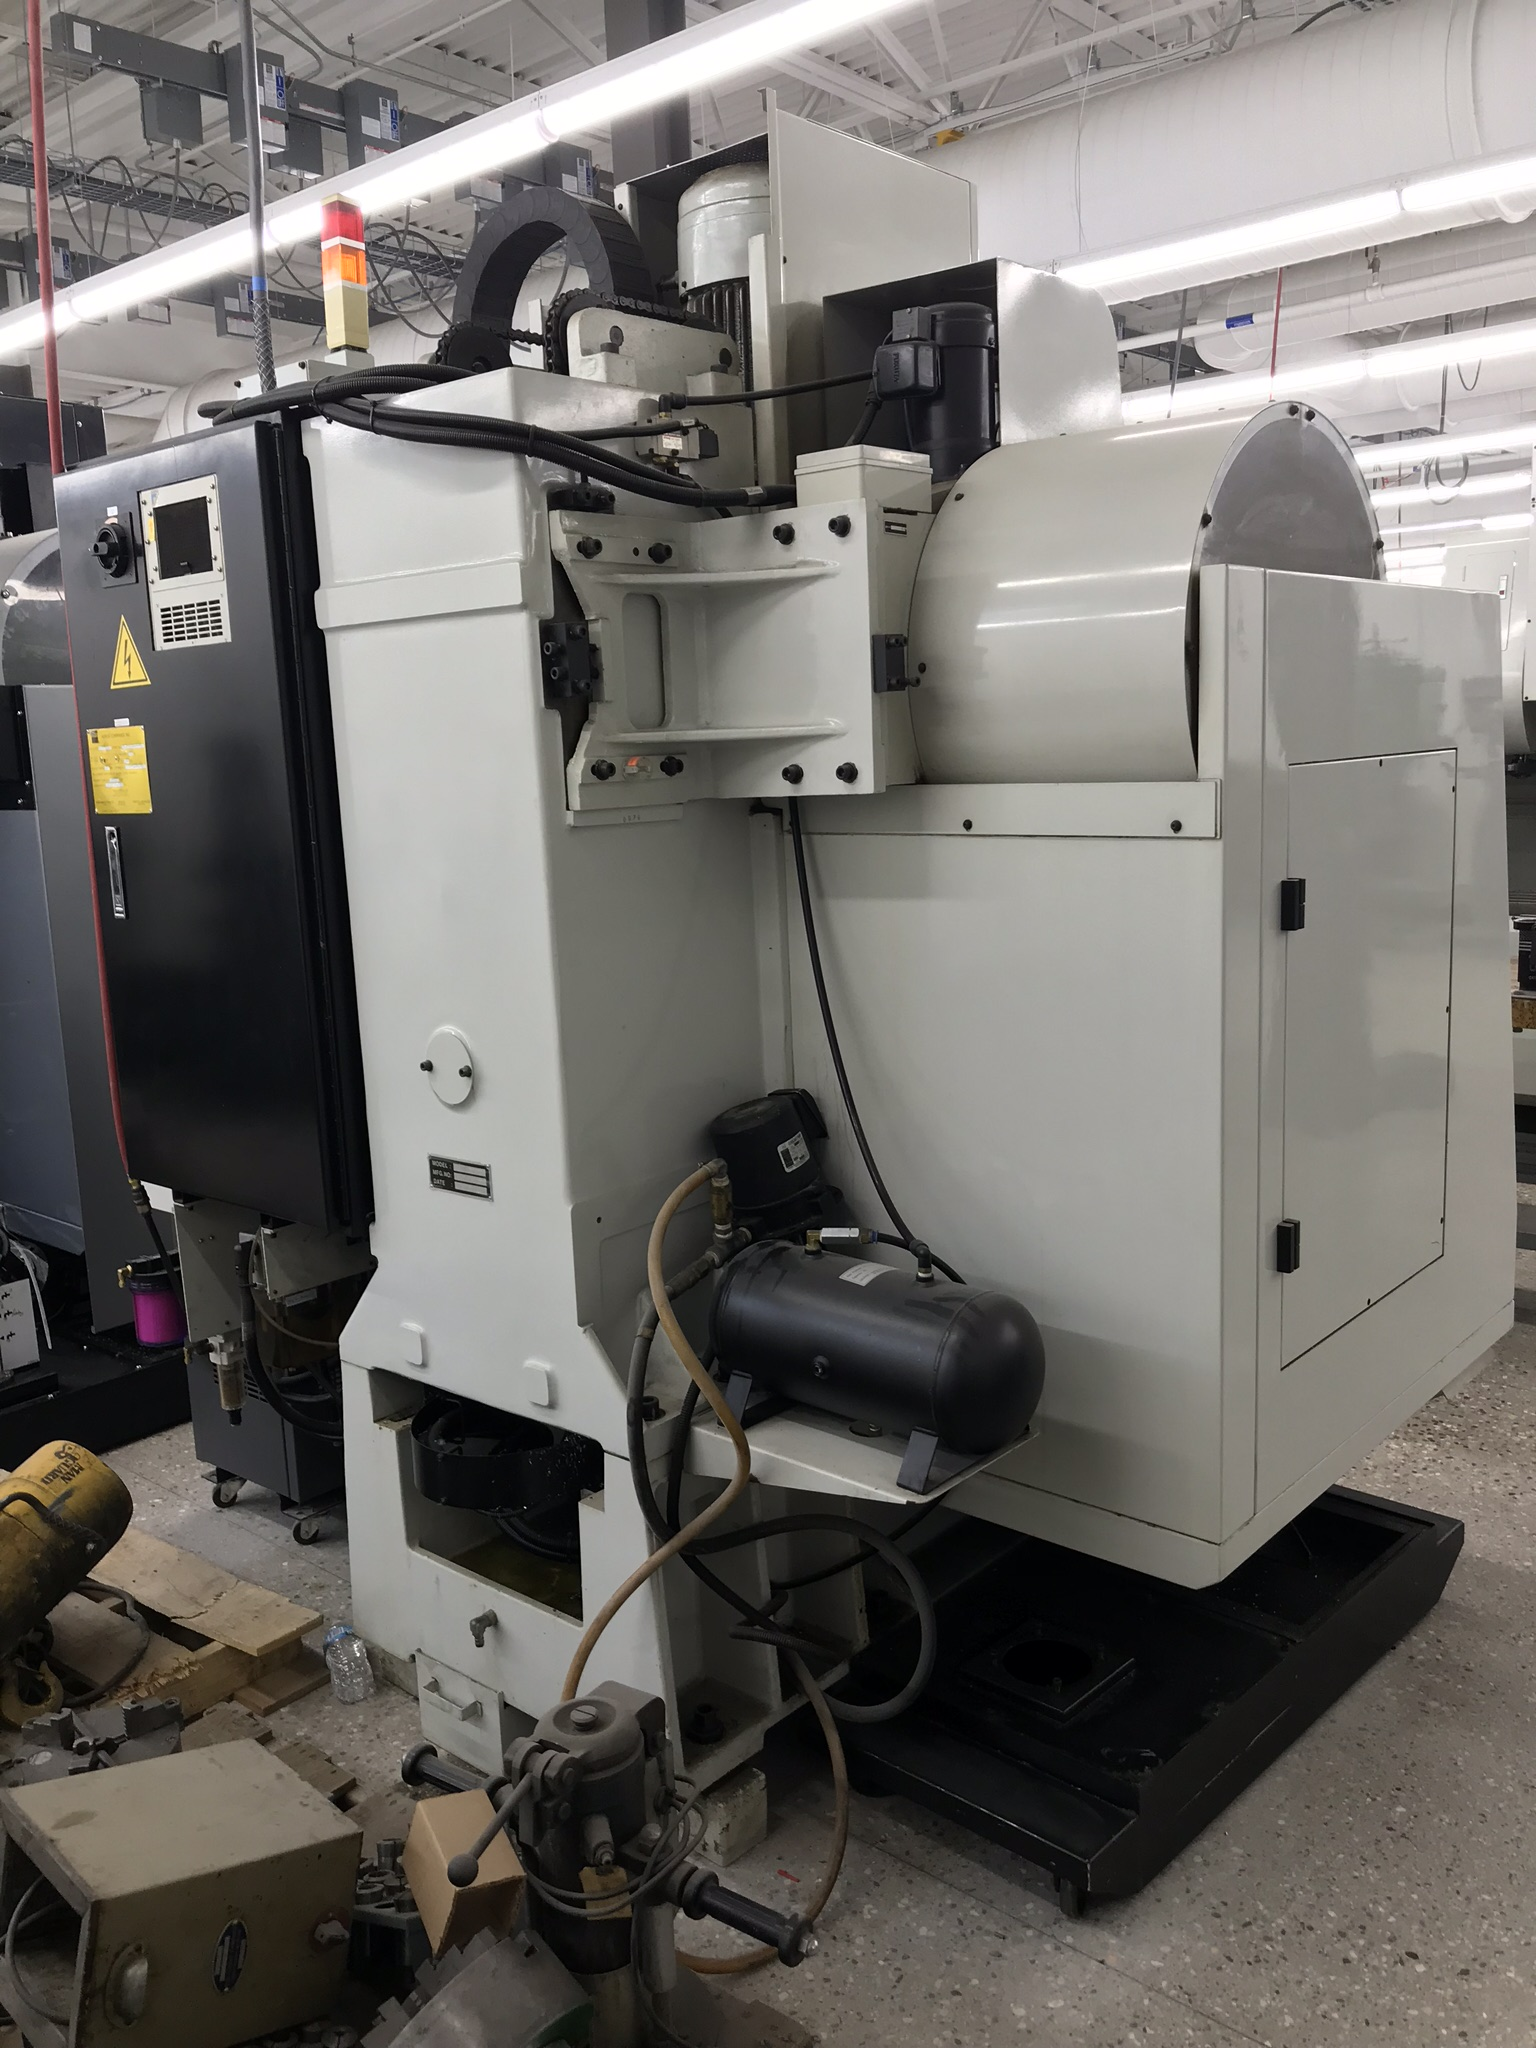 Hurco VM-1 CNC Vertical Machining Center, Spindle Recently Replaced, Approx 6,500 Hours, Max Control - Image 6 of 6